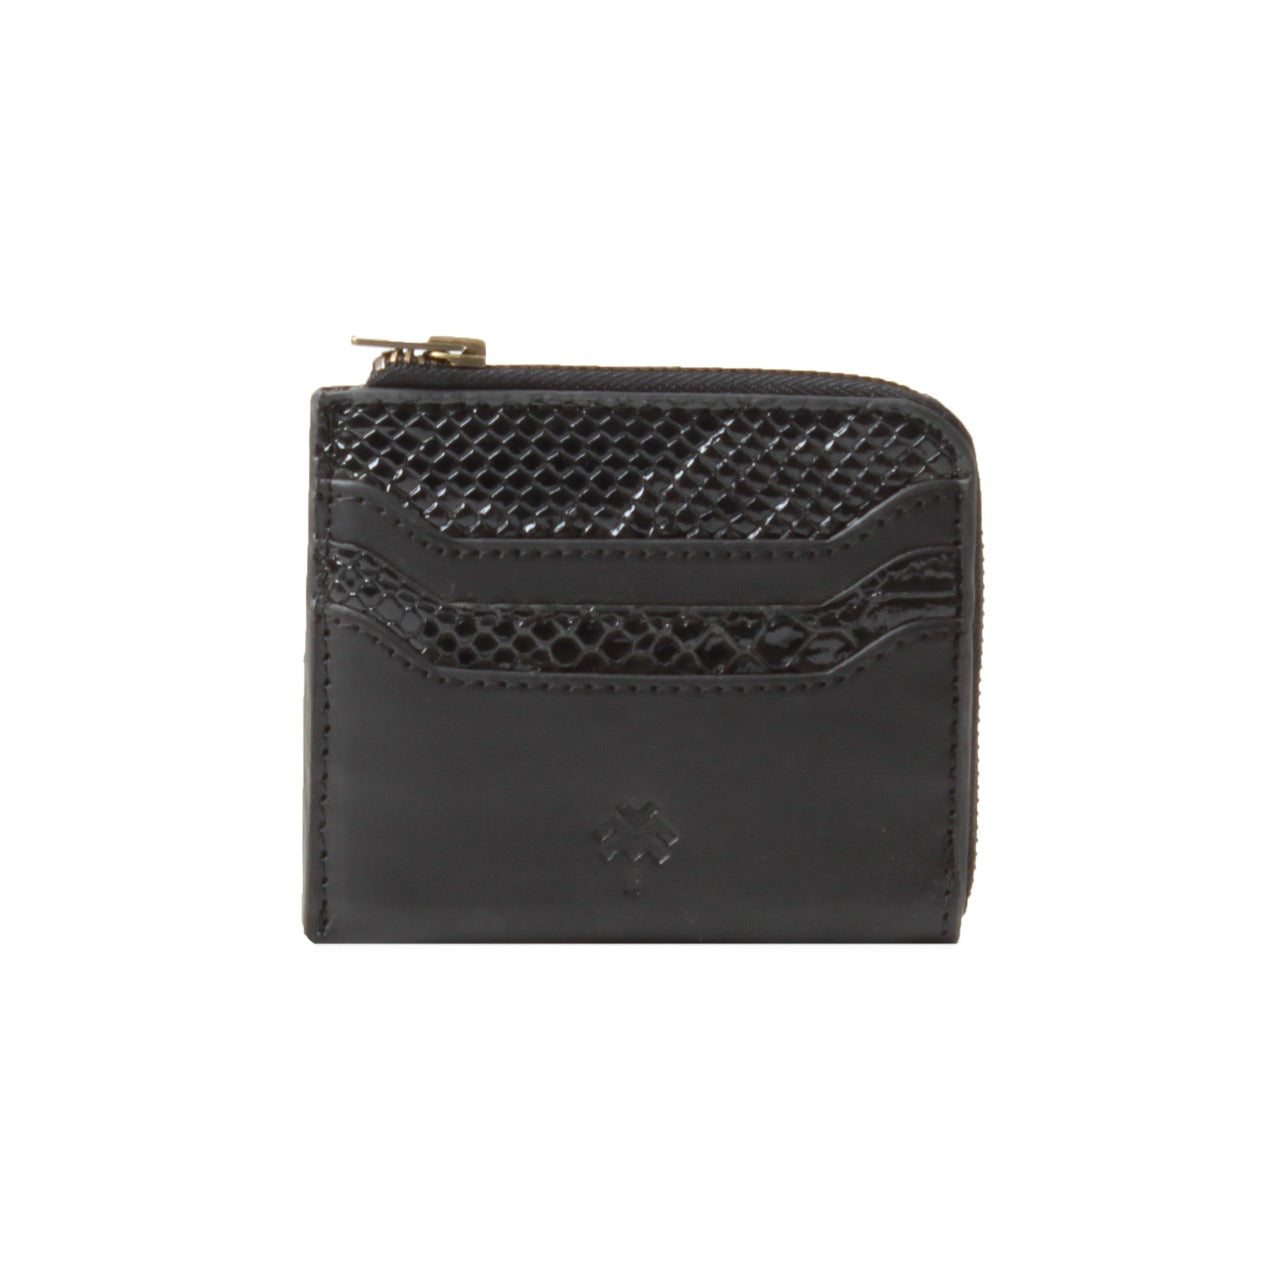 Rattlesnake Card Holder Black